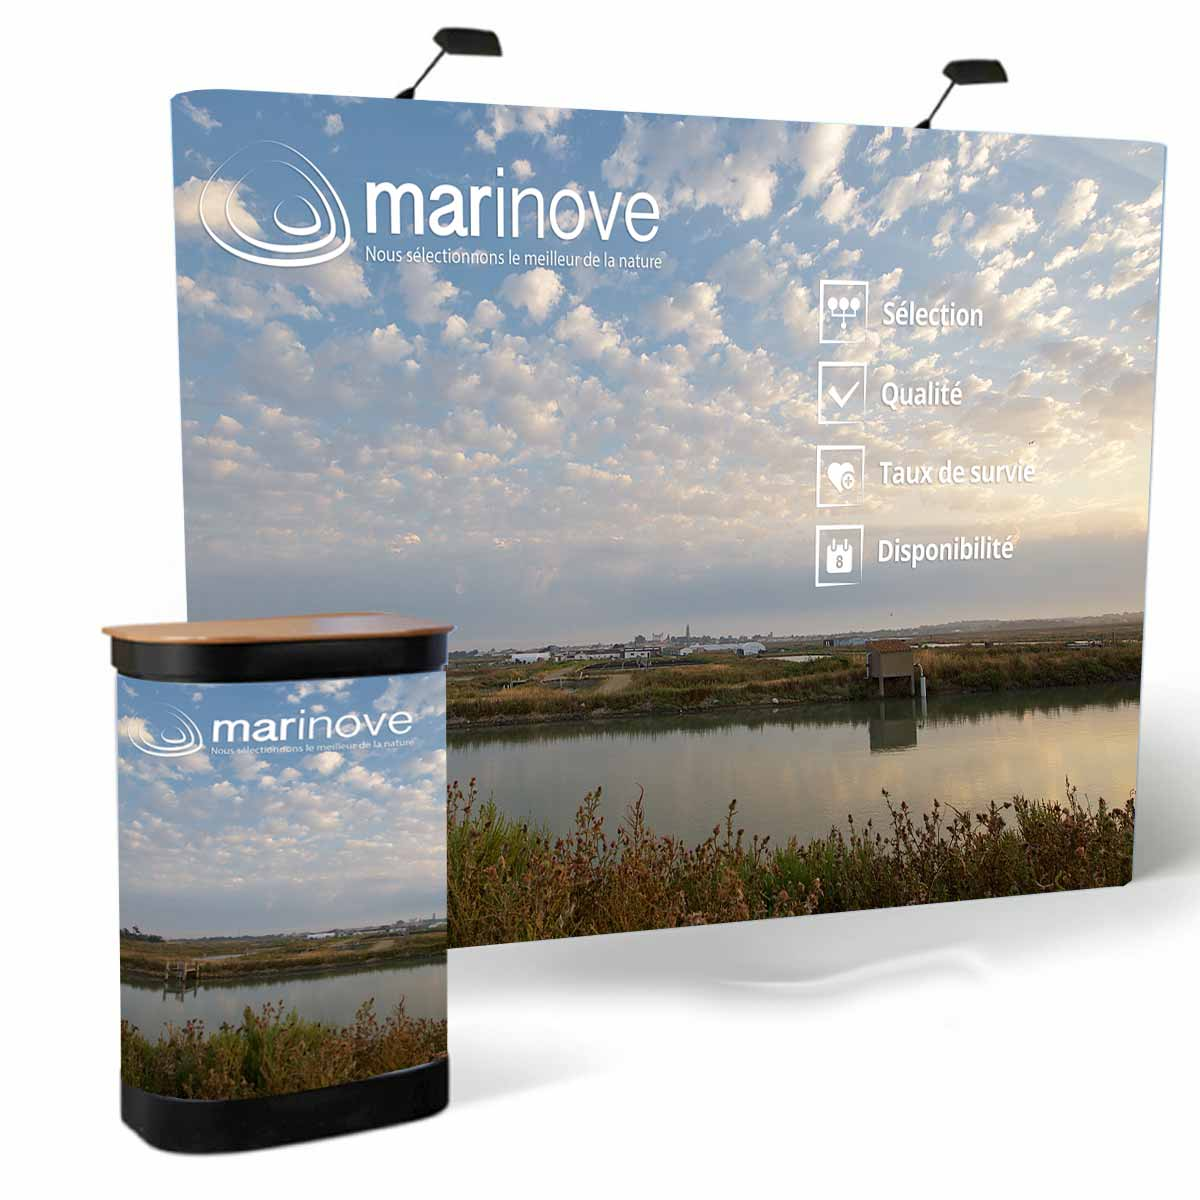 marinove is present at trade fairs